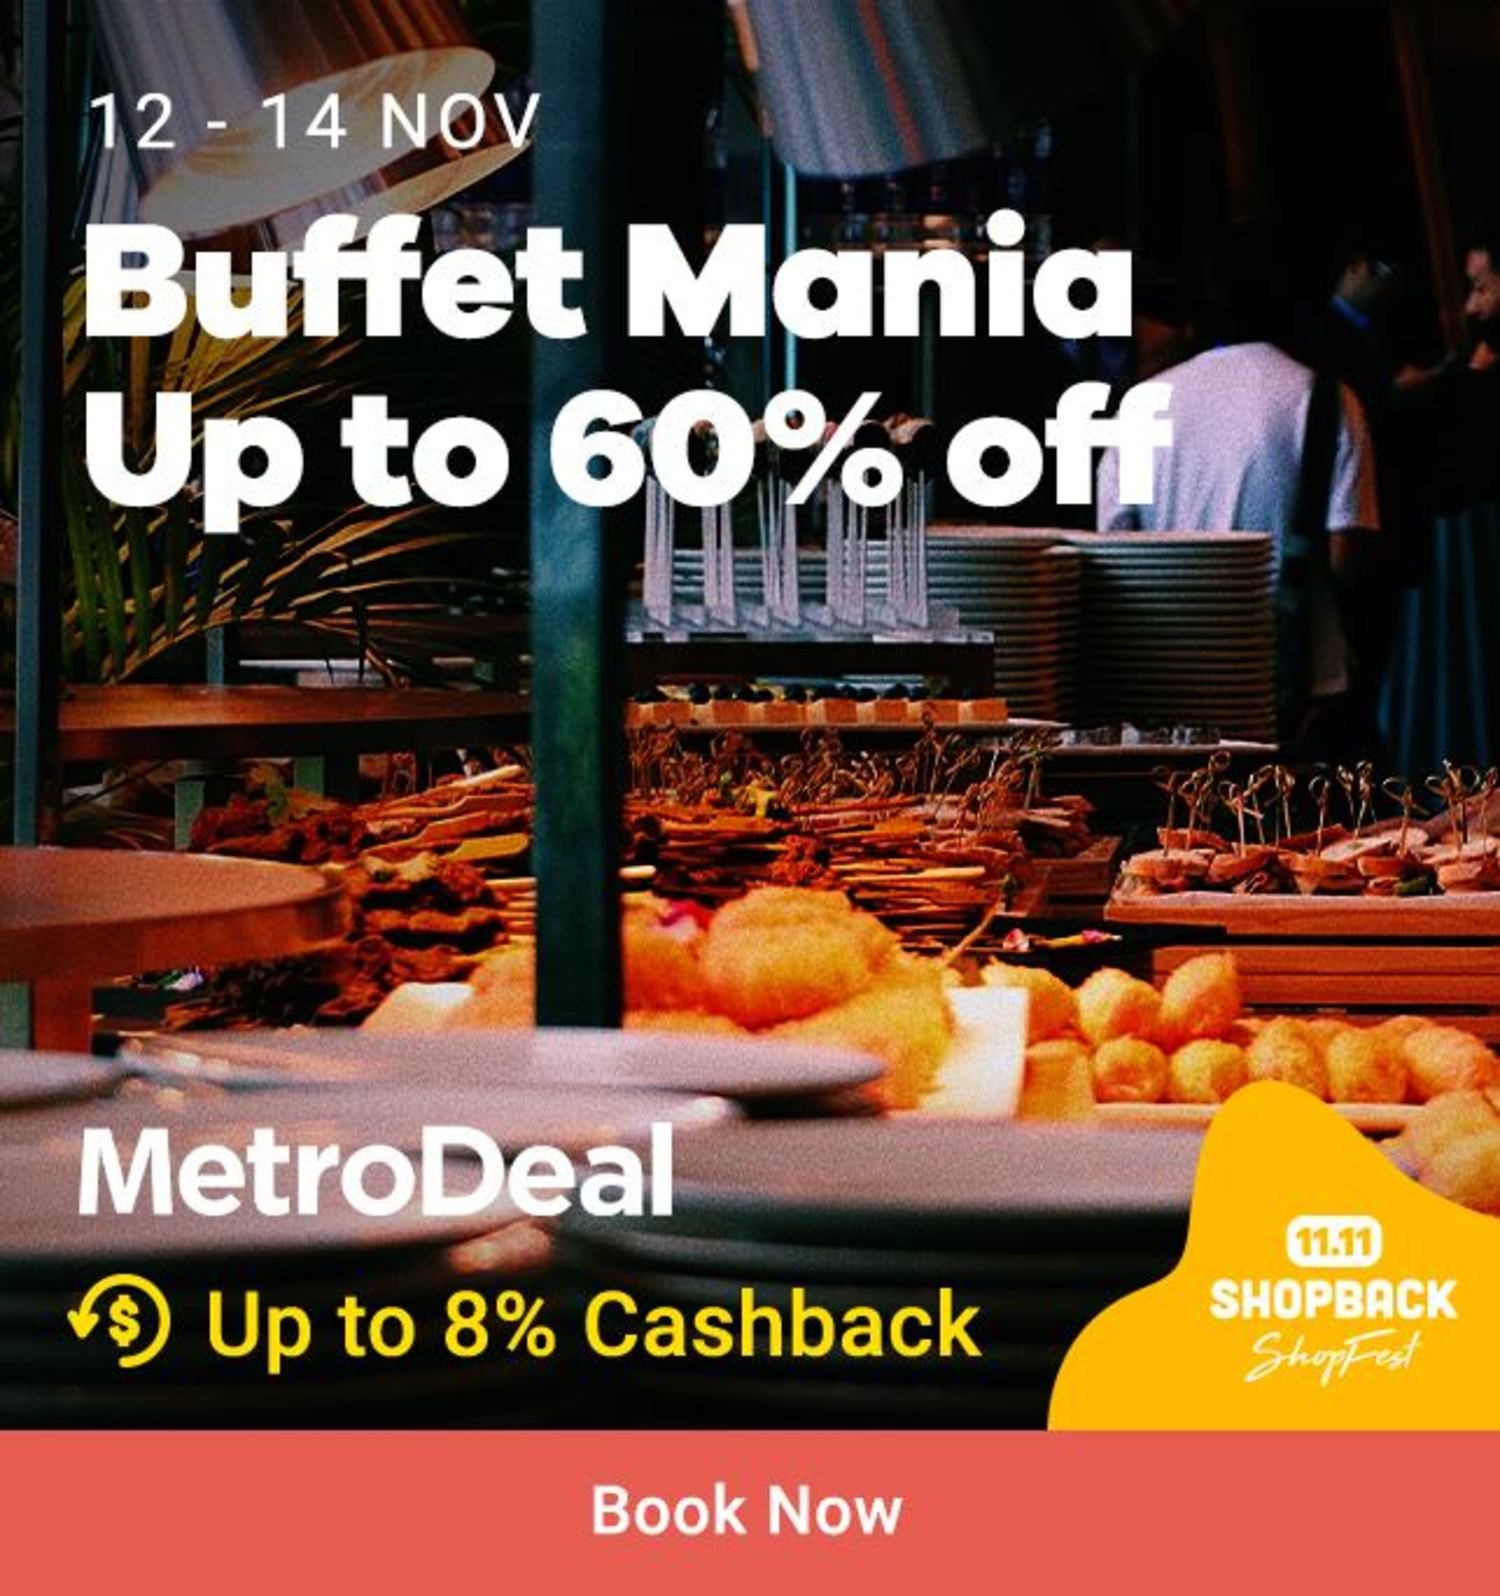 Metrodeal Buffet Mania Up to 60% off